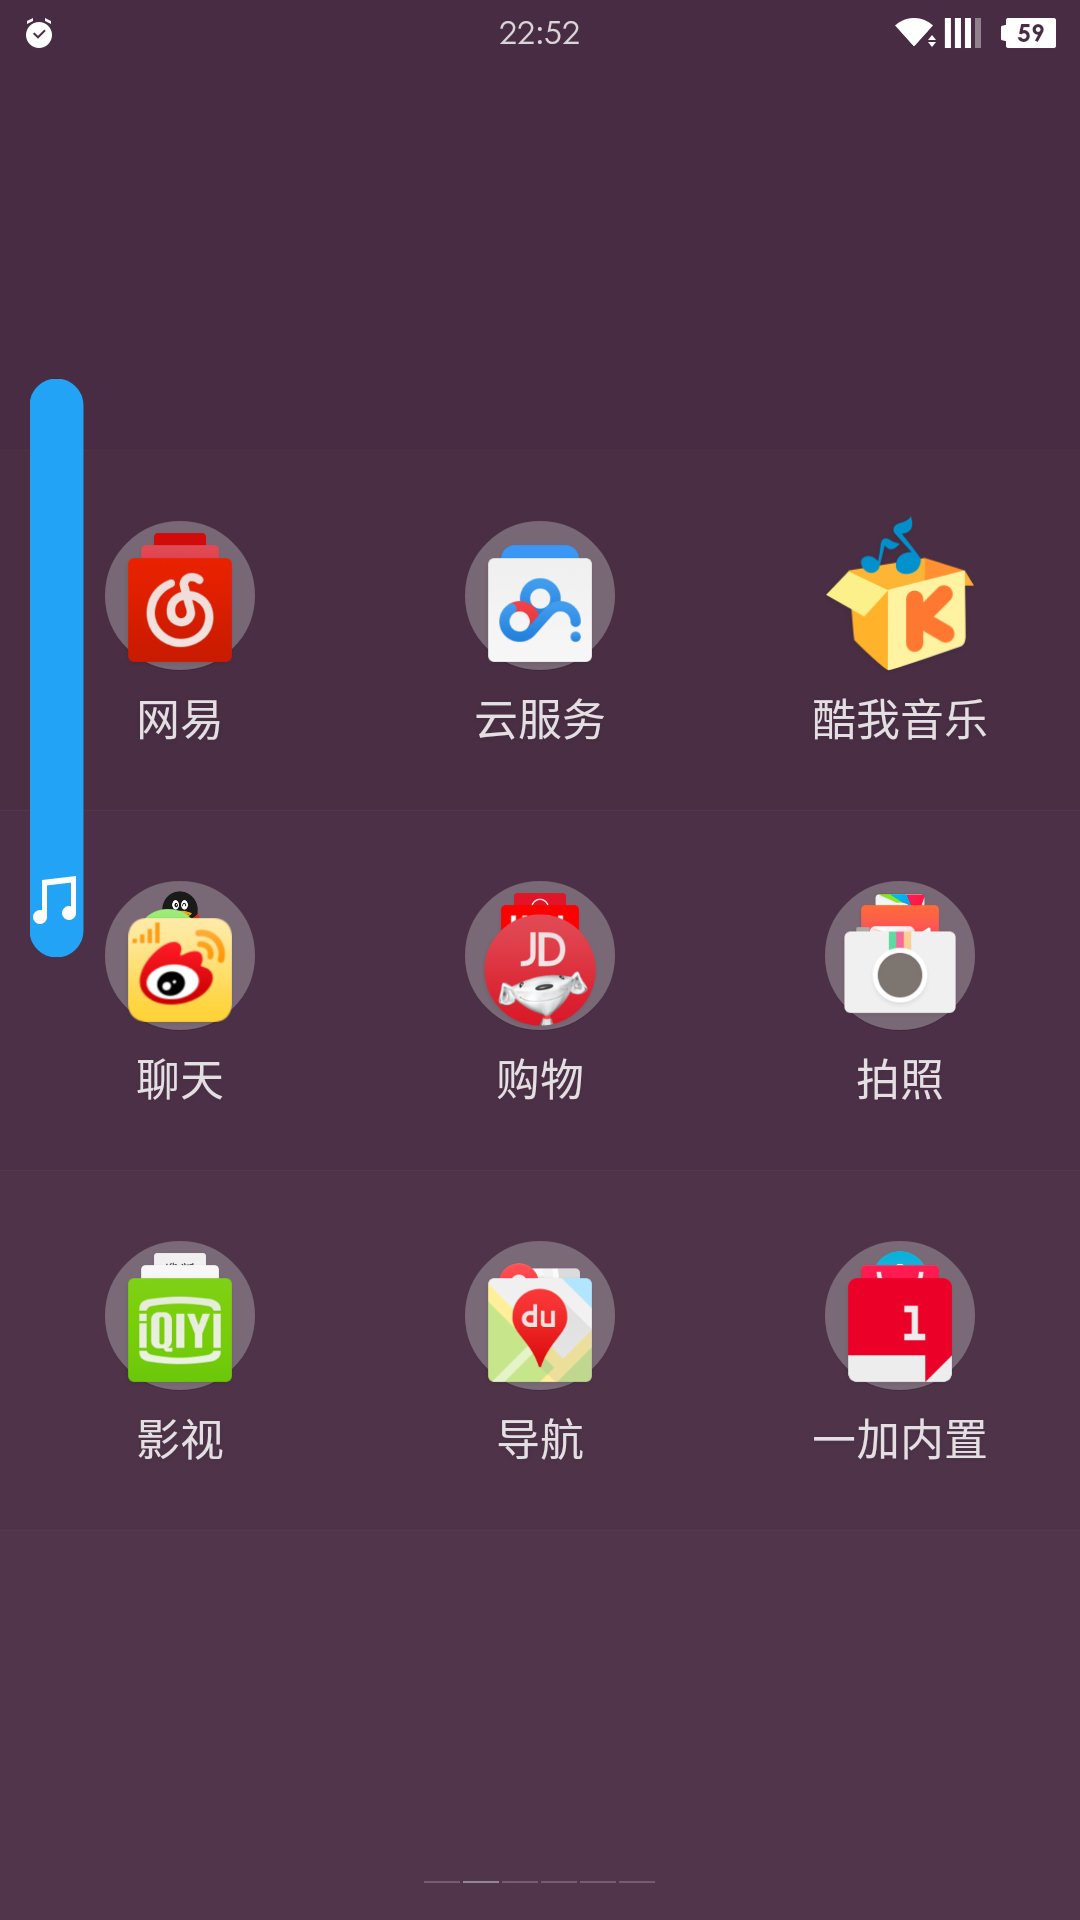 Screenshot_2015-10-31-22-52-04.png